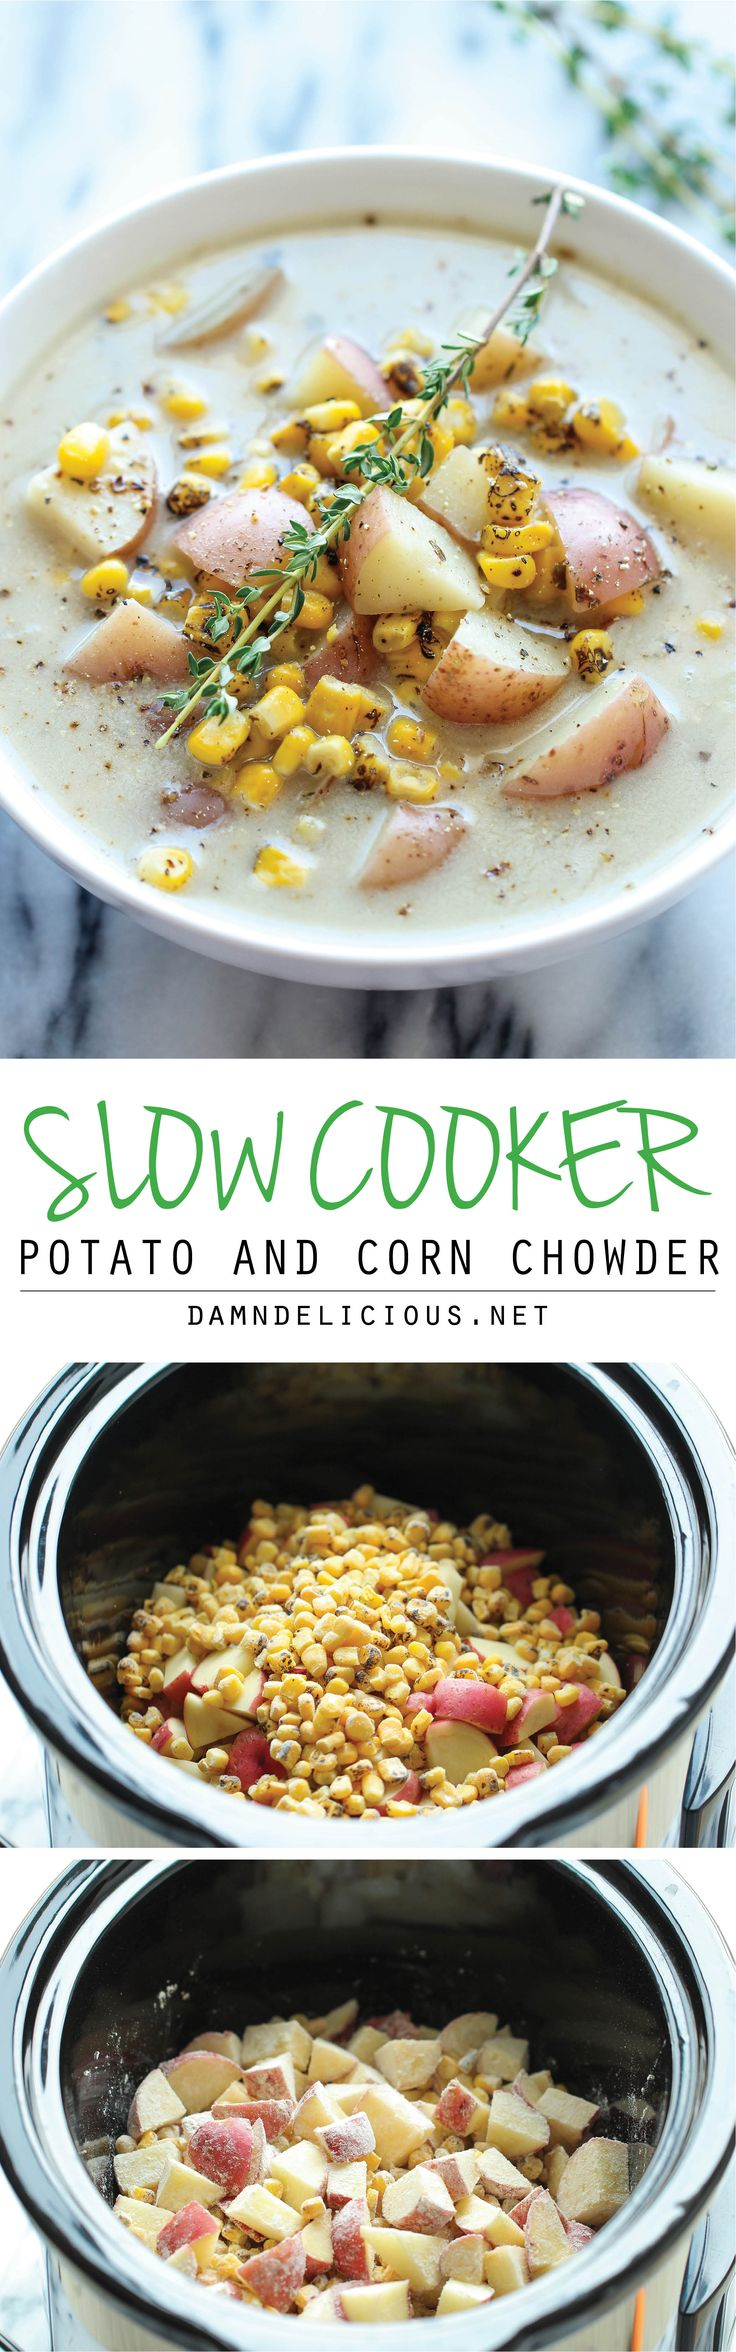 Slow Cooker Potato and Corn Chowder - The easiest chowder you will ...